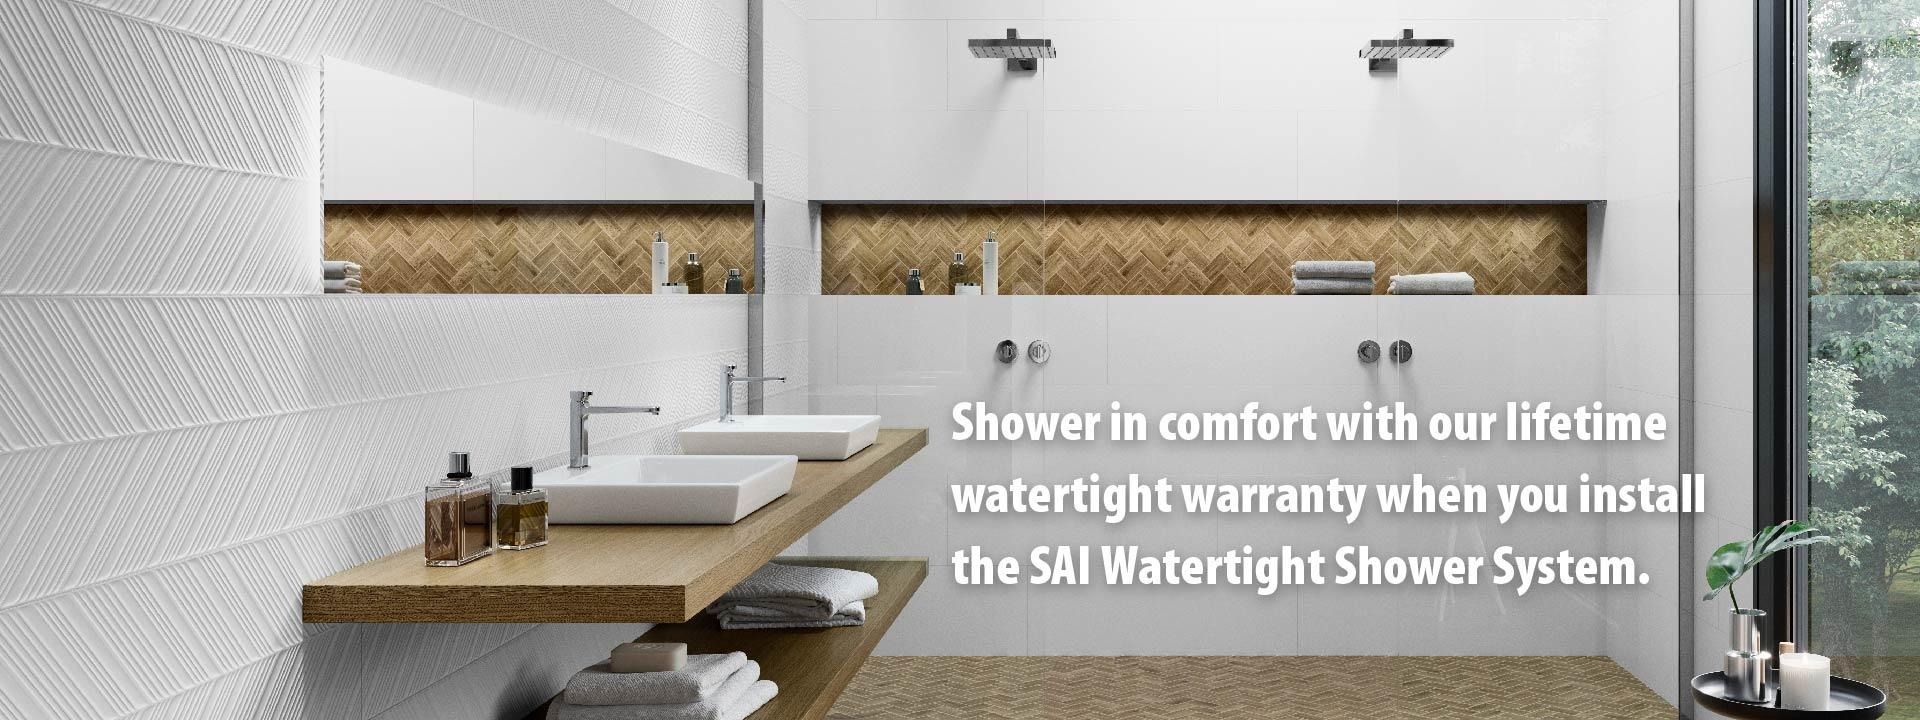 Surface Art Watertight Shower System